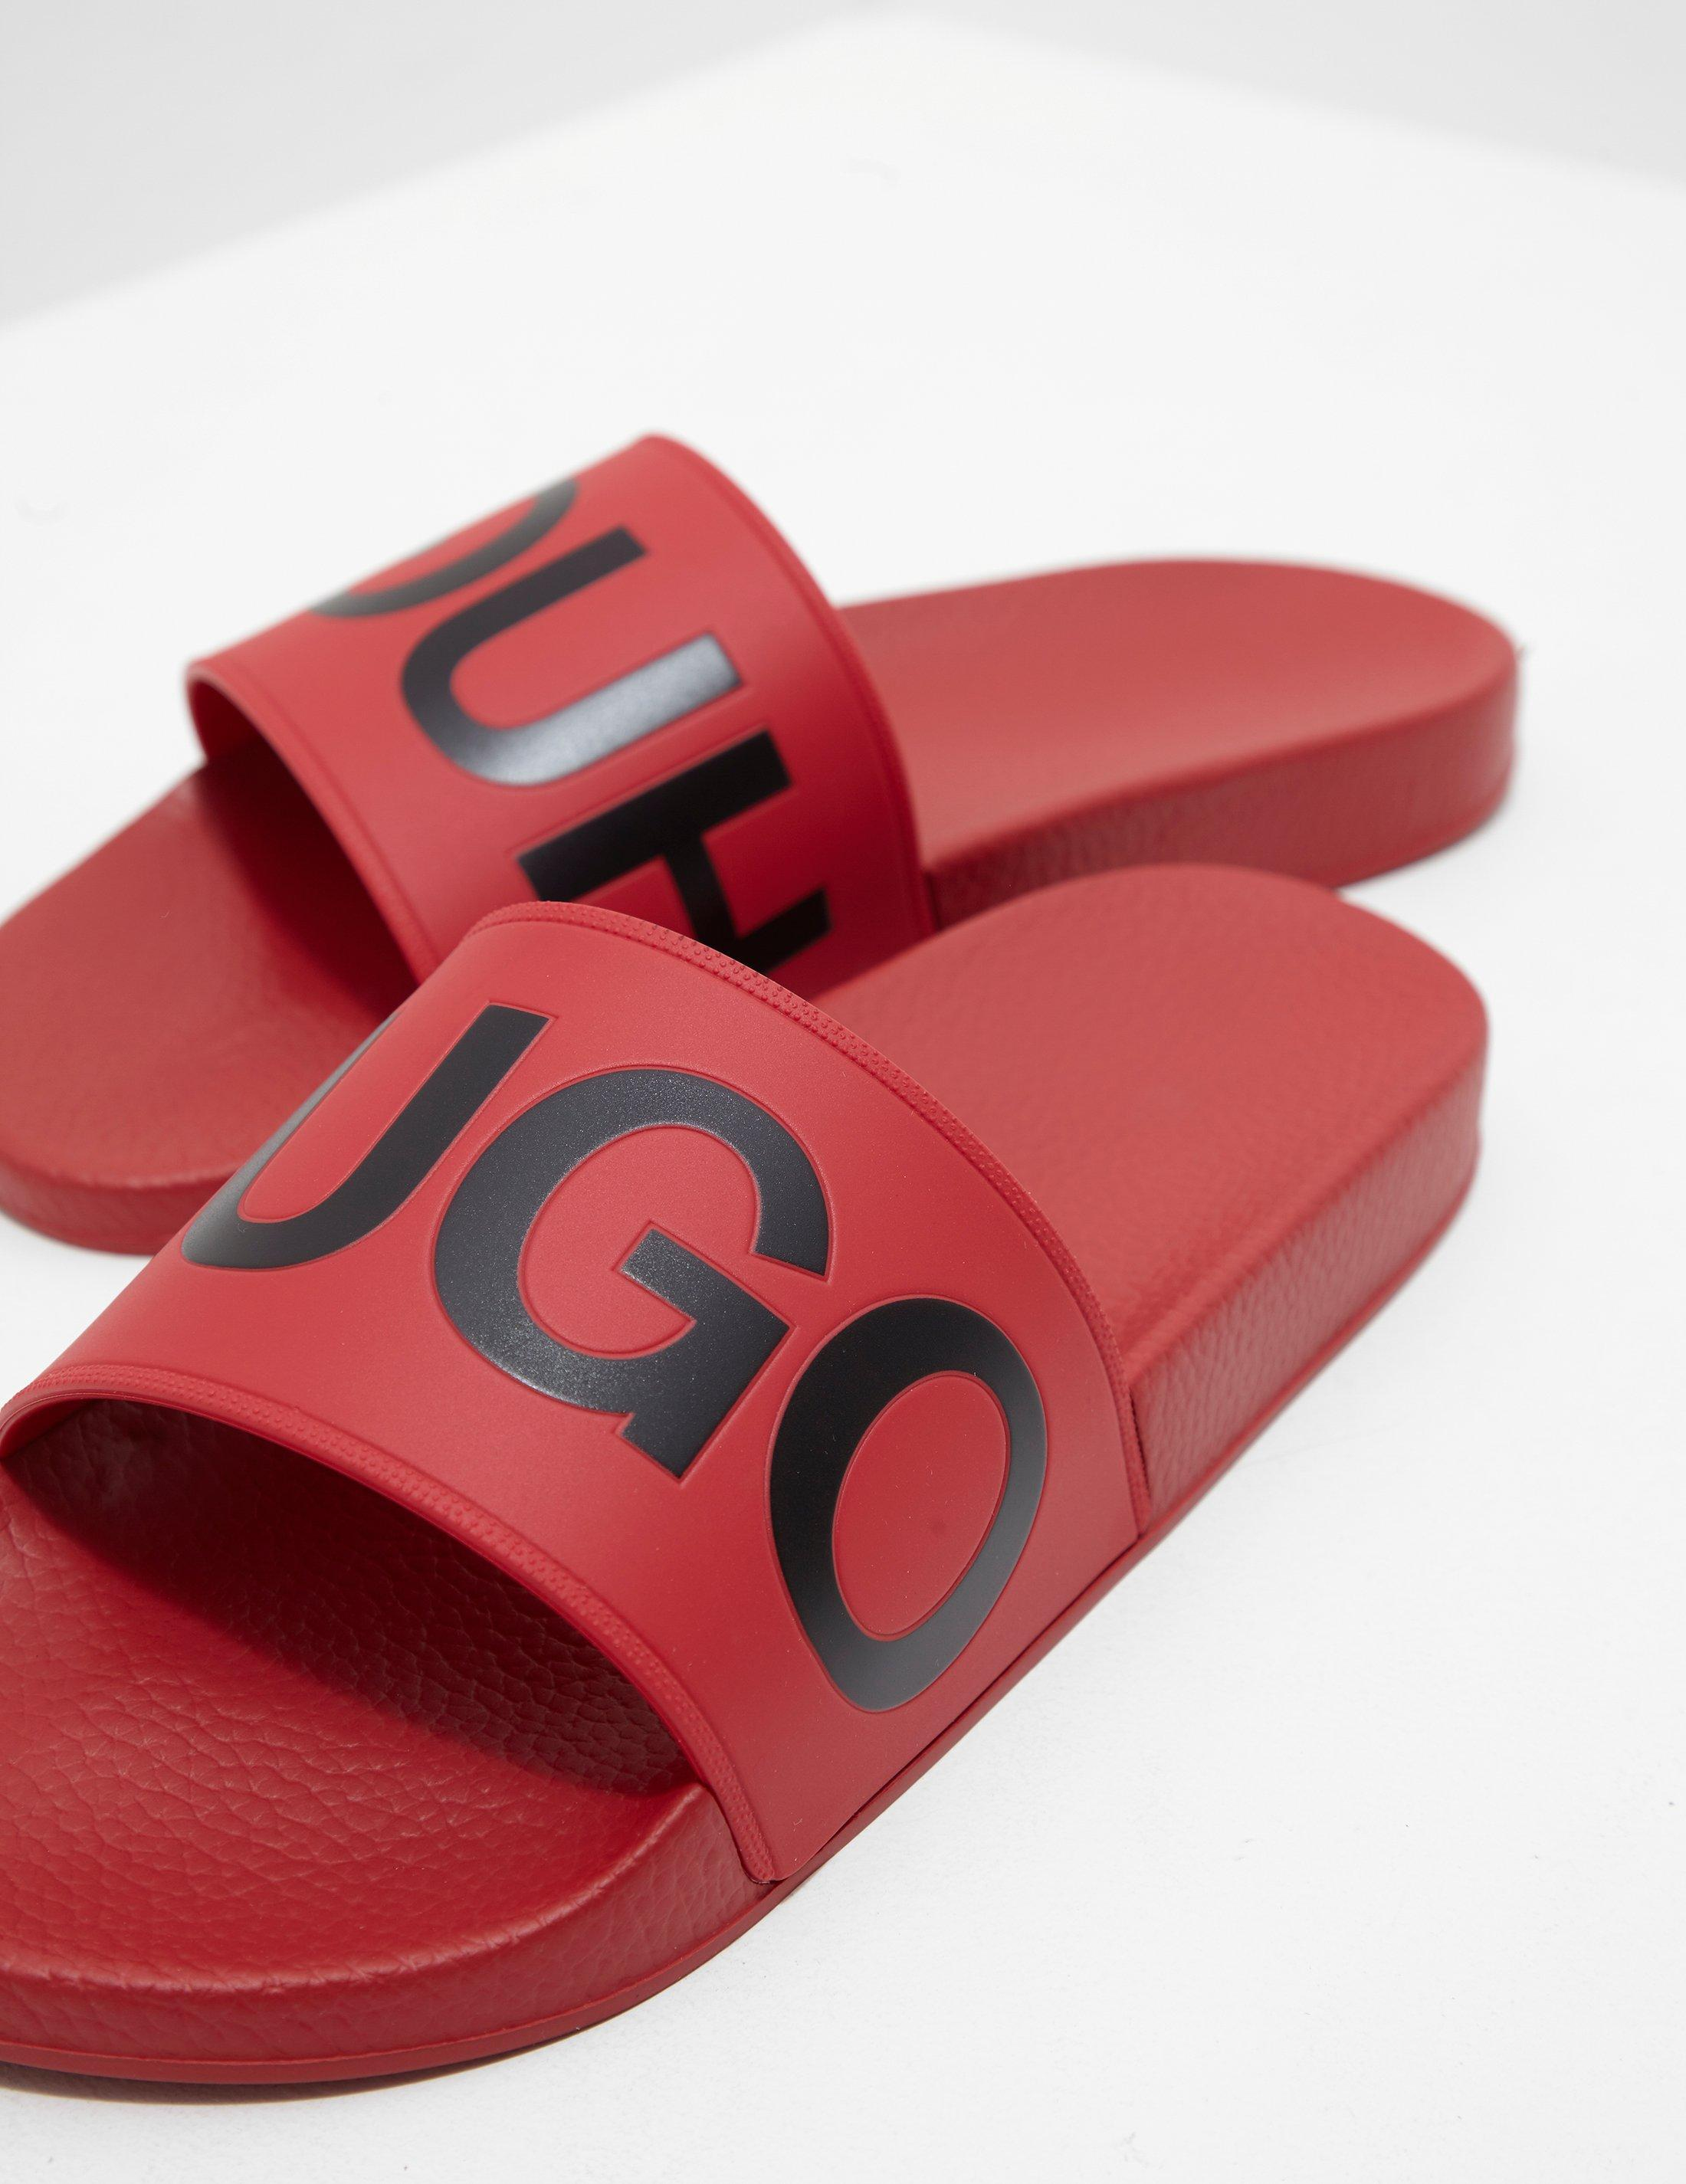 38cafe6fac50 Lyst - HUGO Timeout Slides Red in Red for Men - Save 72%